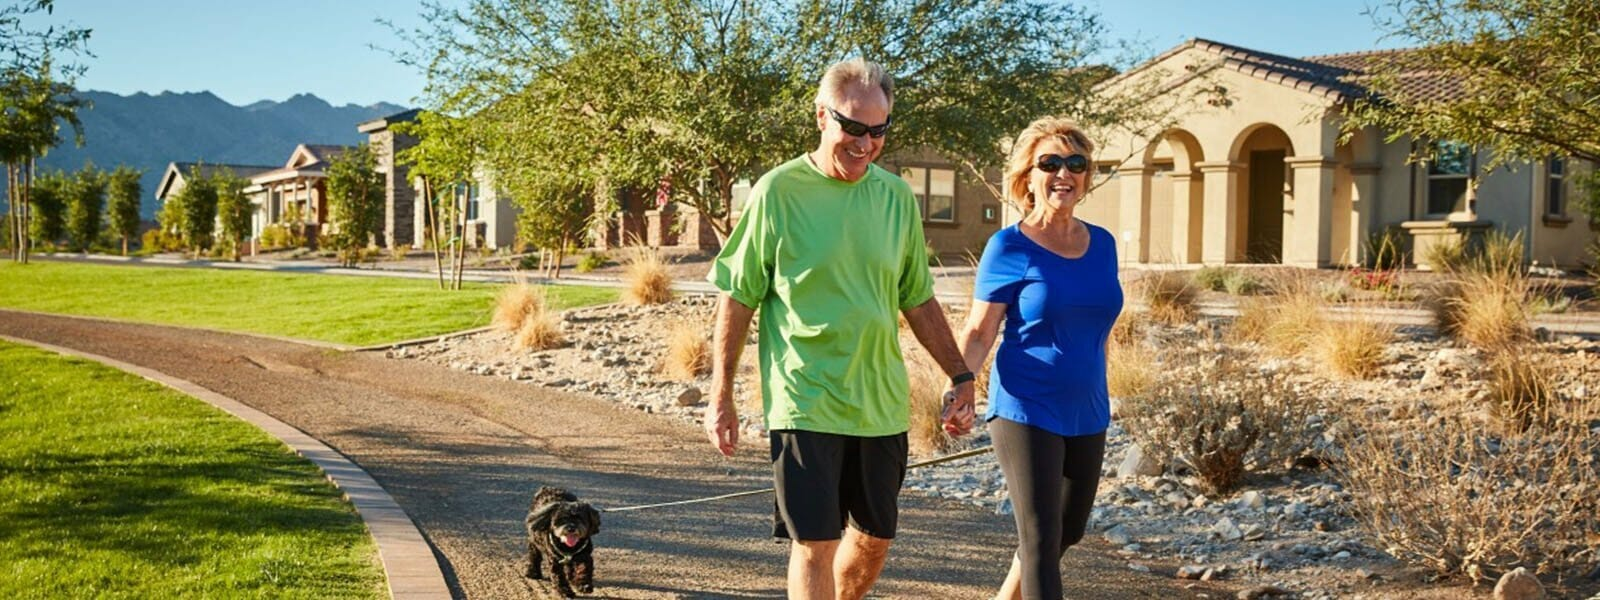 New Homes near Phoenix AZ | K Hovnanian Victory at Verrado | 55+ Living